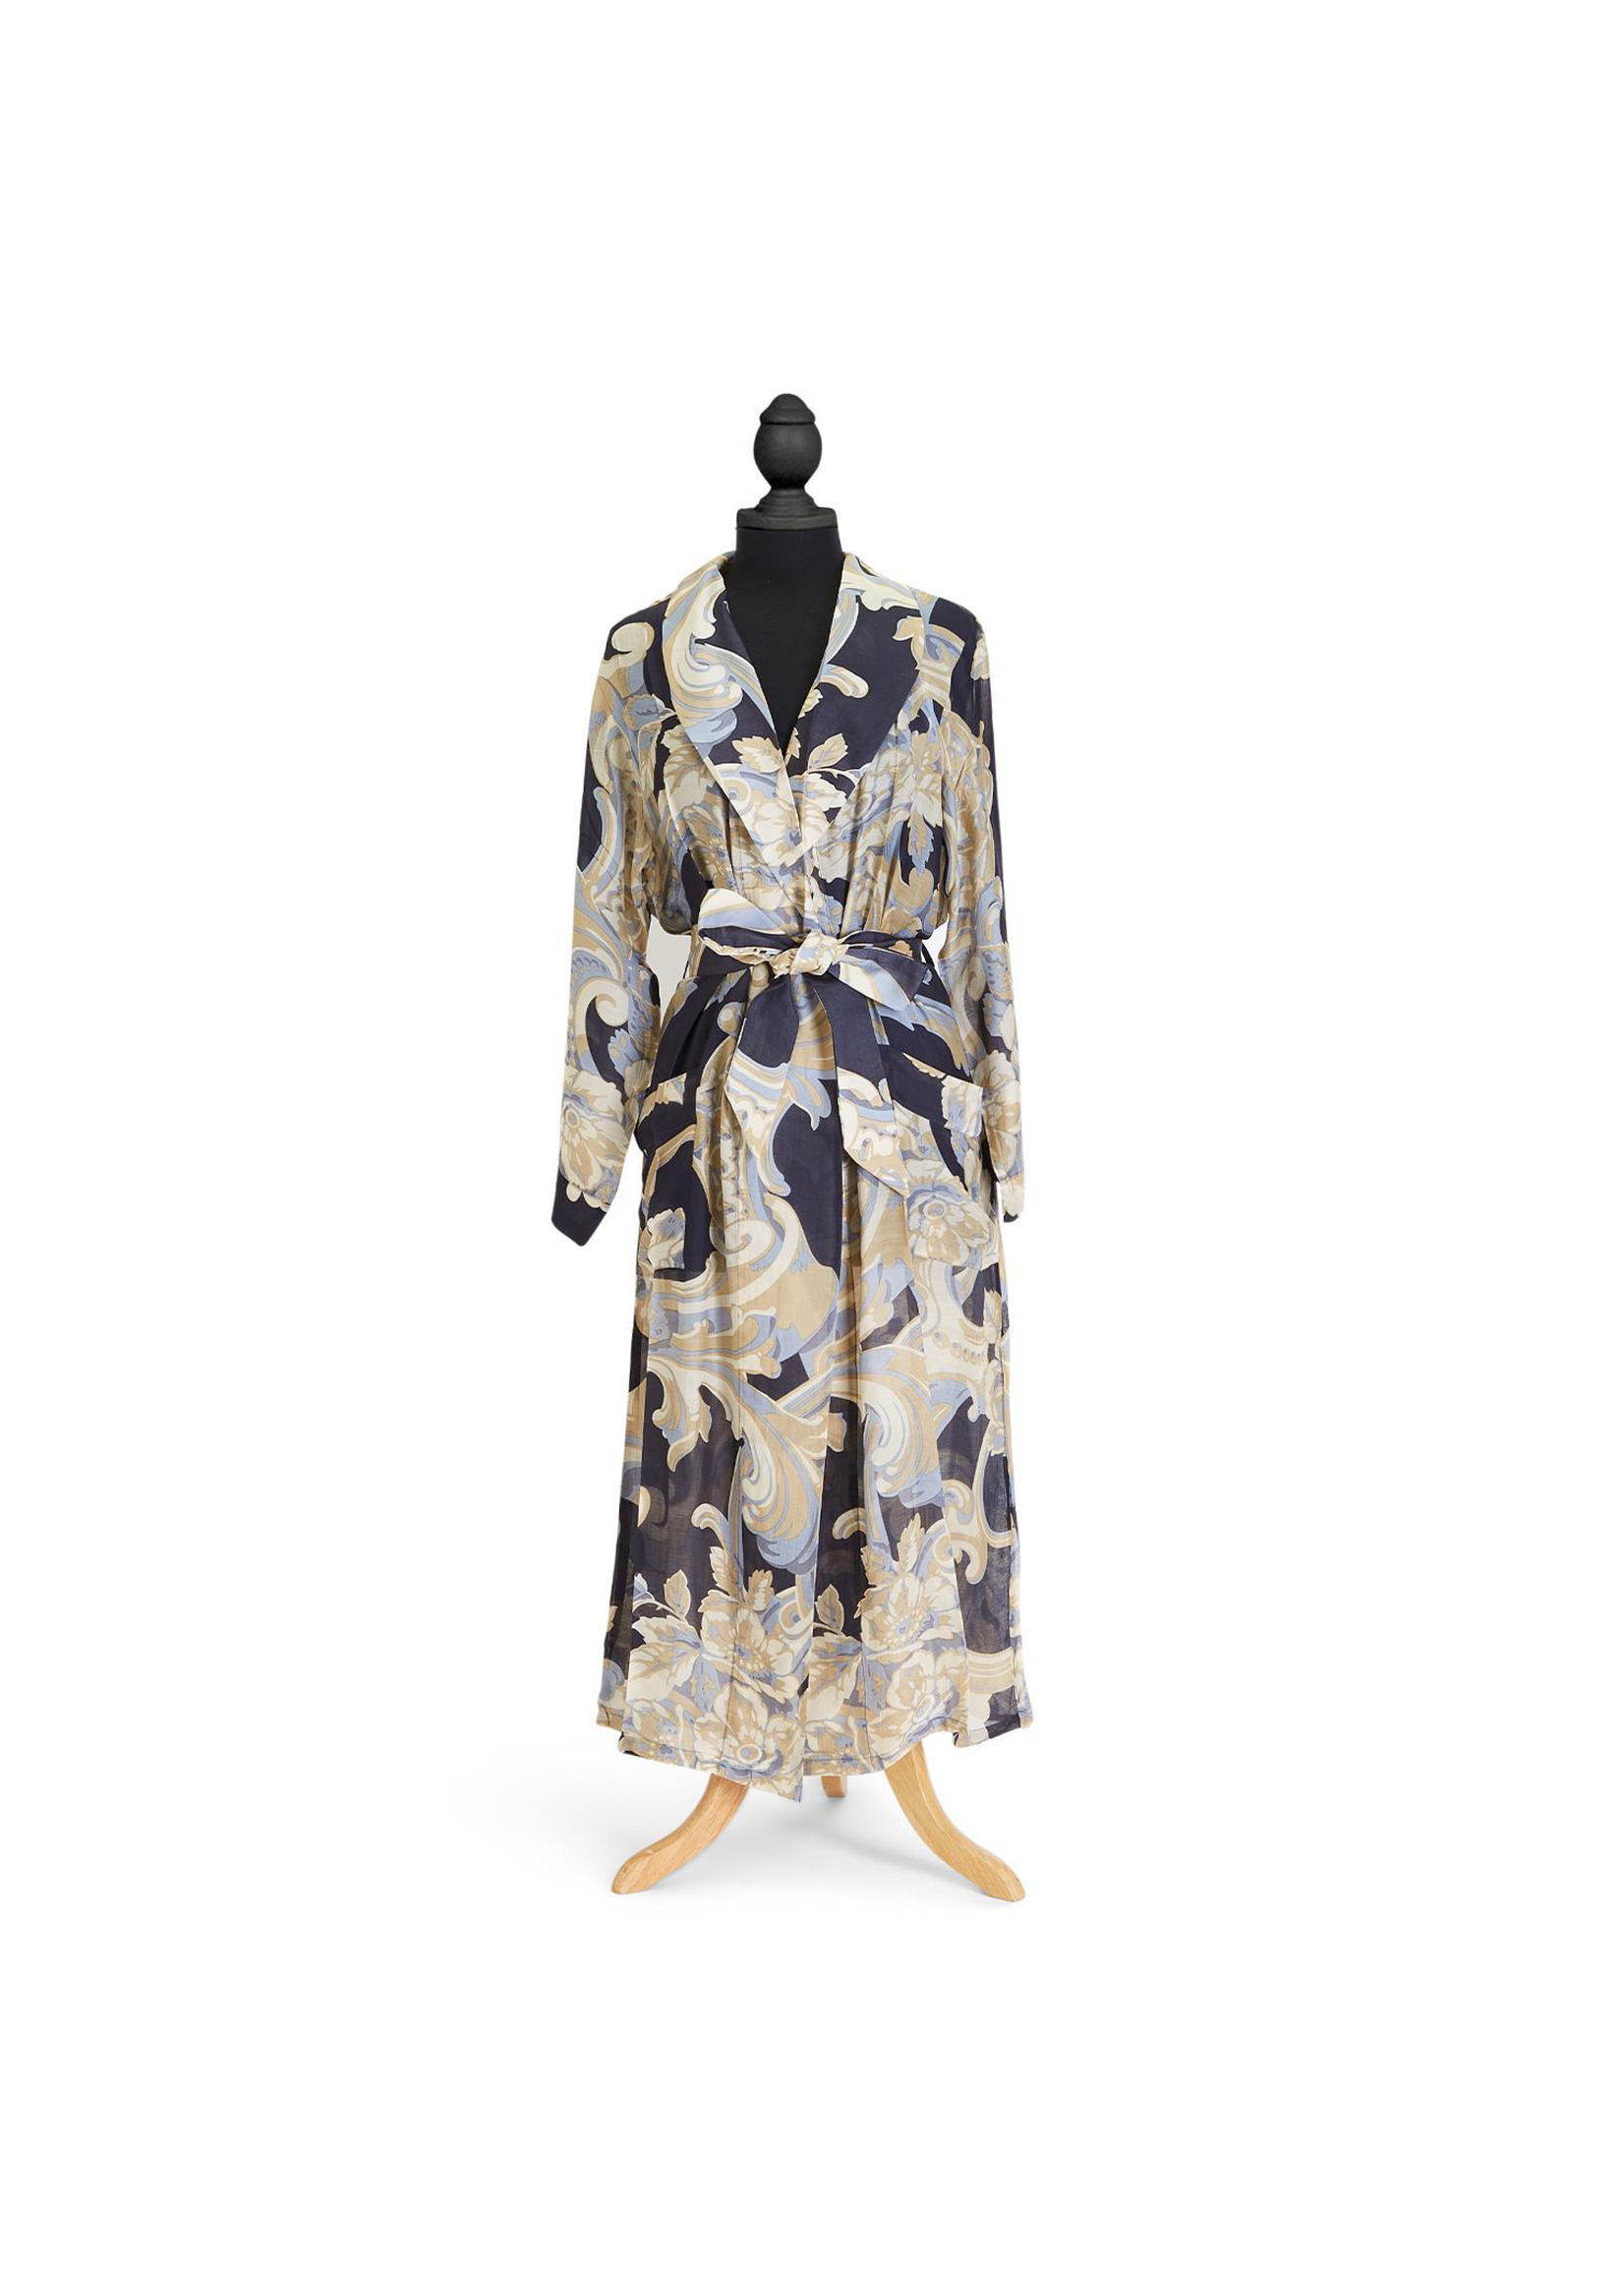 Two's Company, Inc. Blue Roses Robe Gown